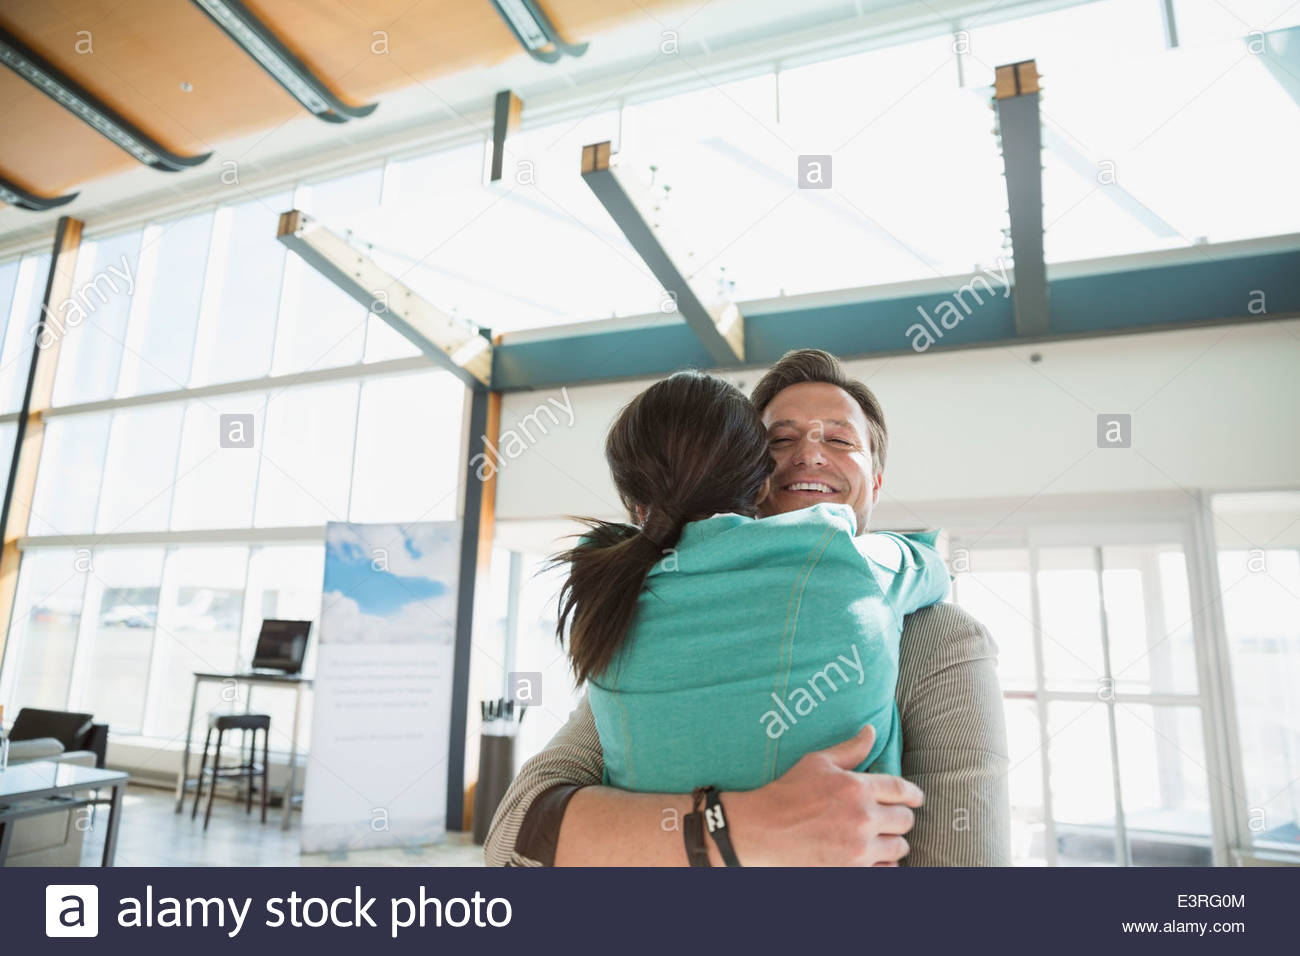 Smiling couple hugging in airport - Stock Image